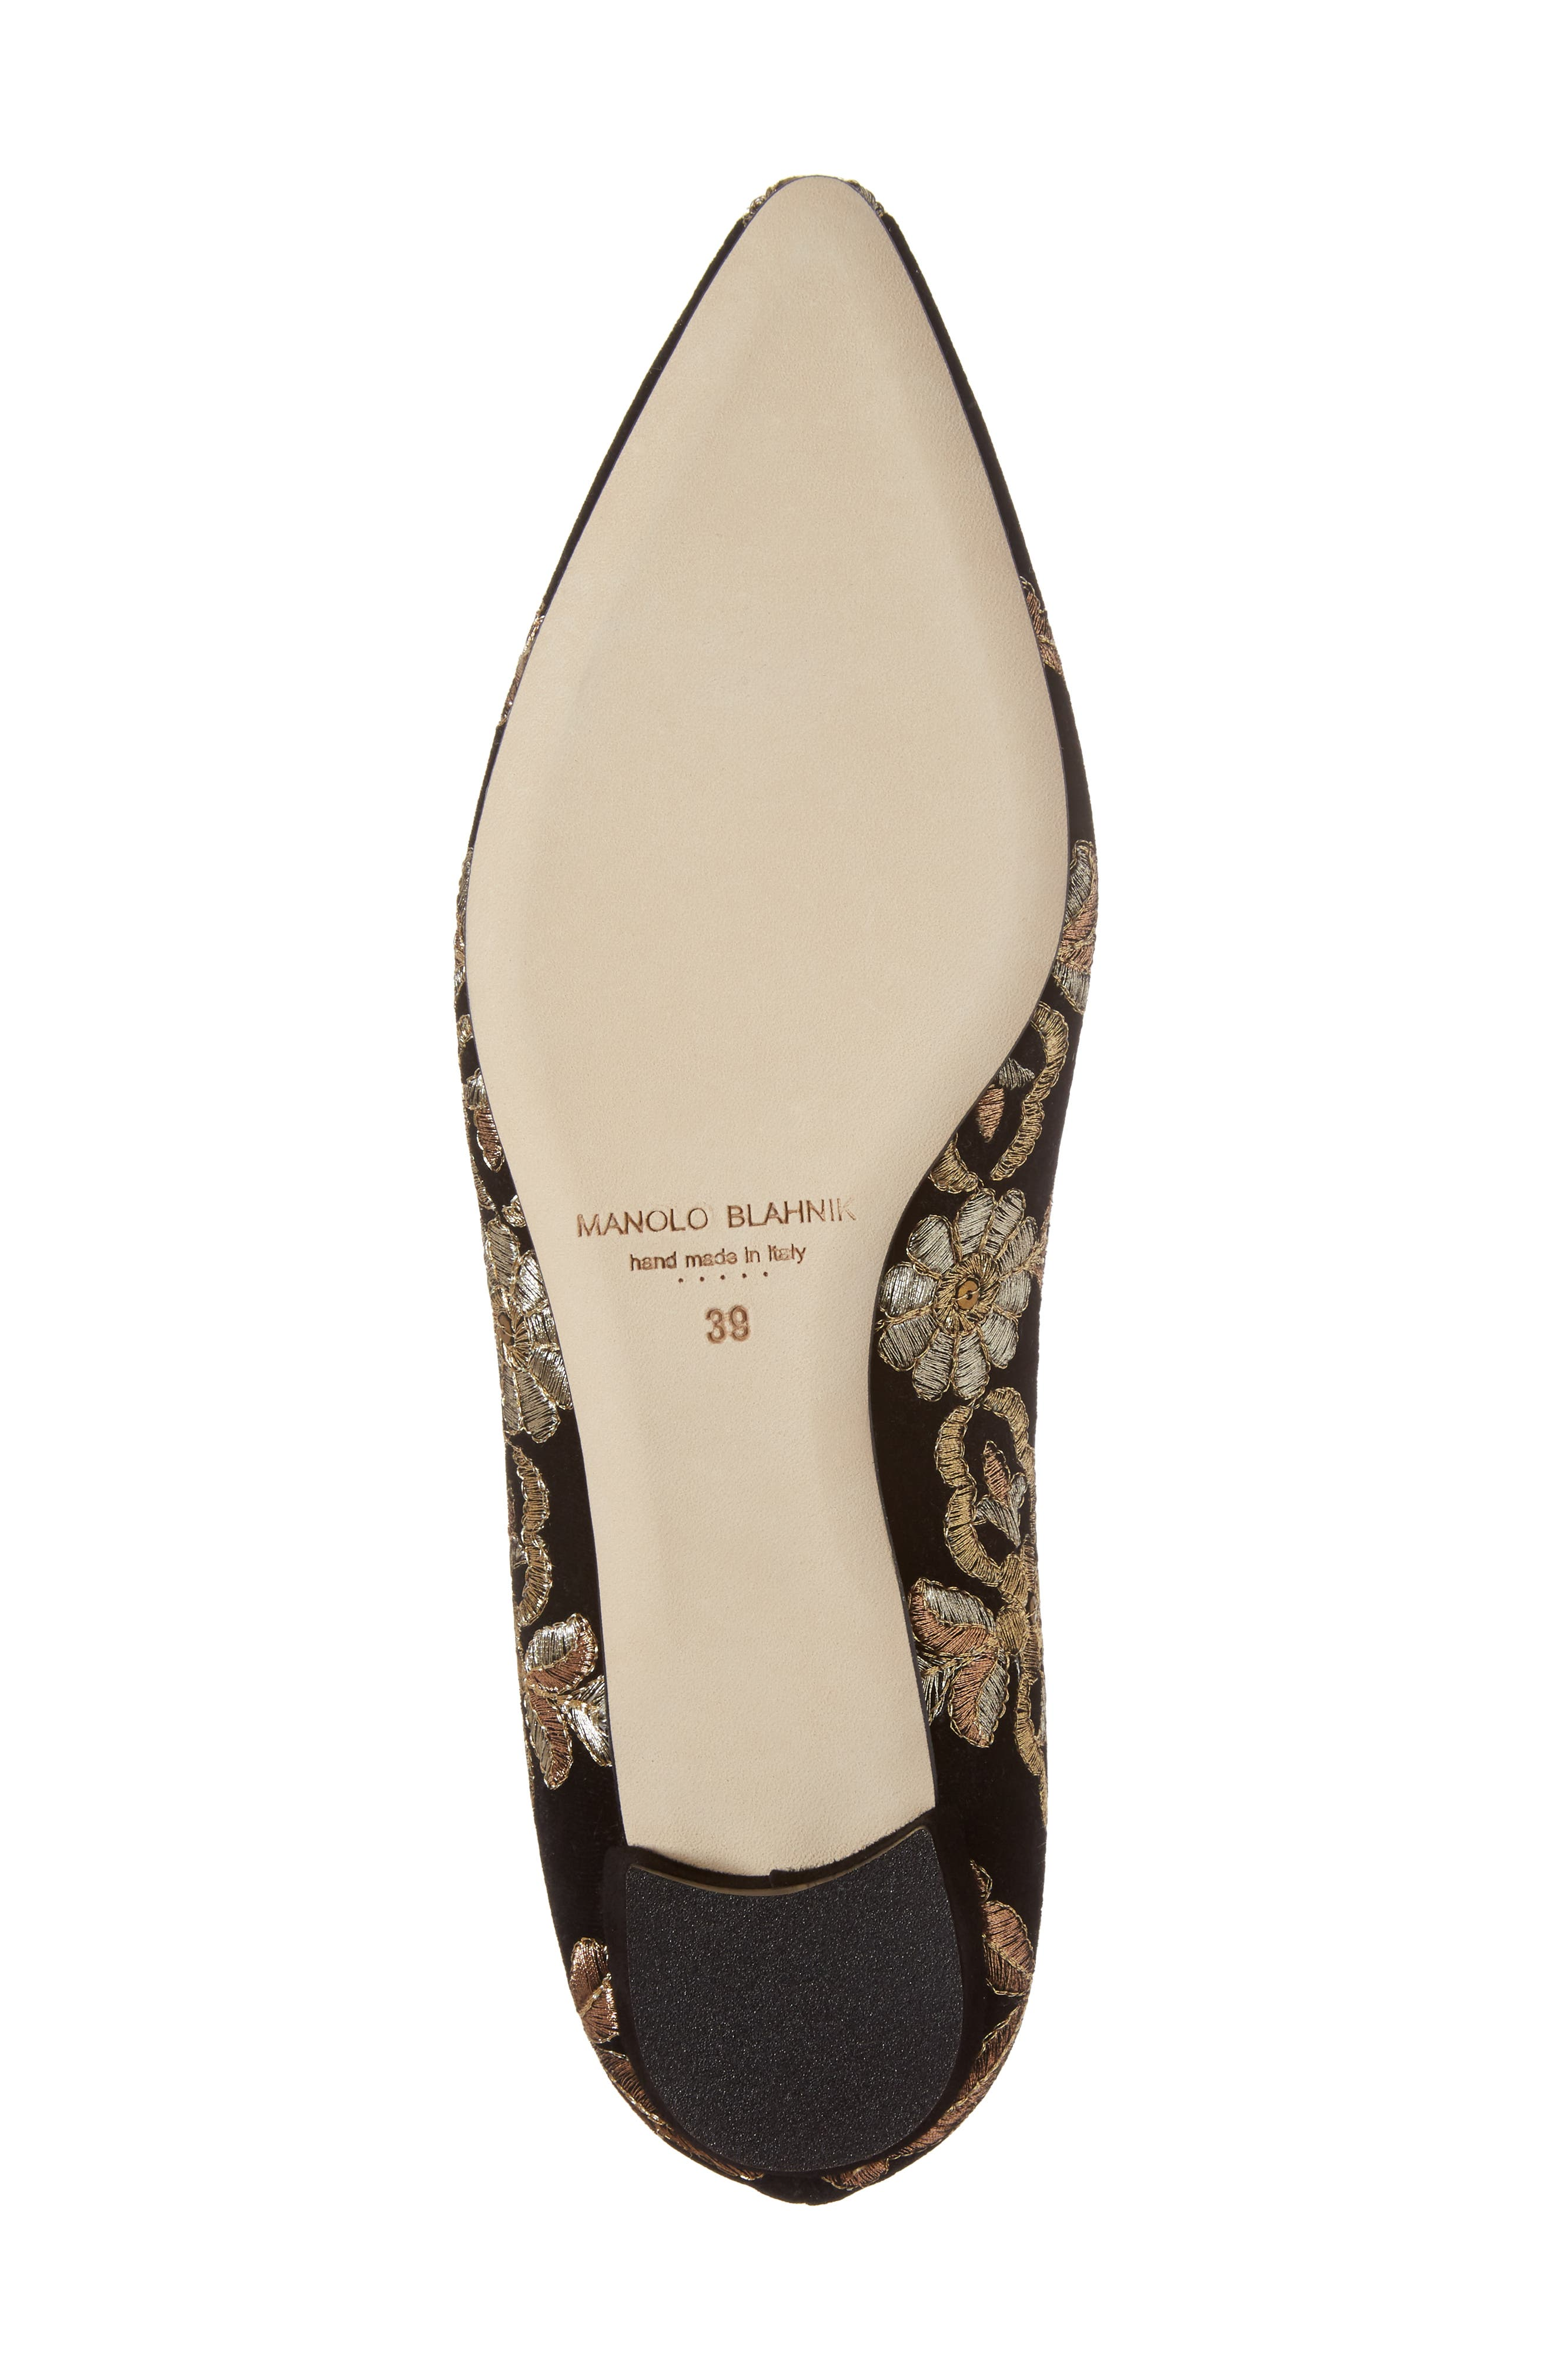 Tittermo Floral Embroidered Ballet Flat,                             Alternate thumbnail 6, color,                             001